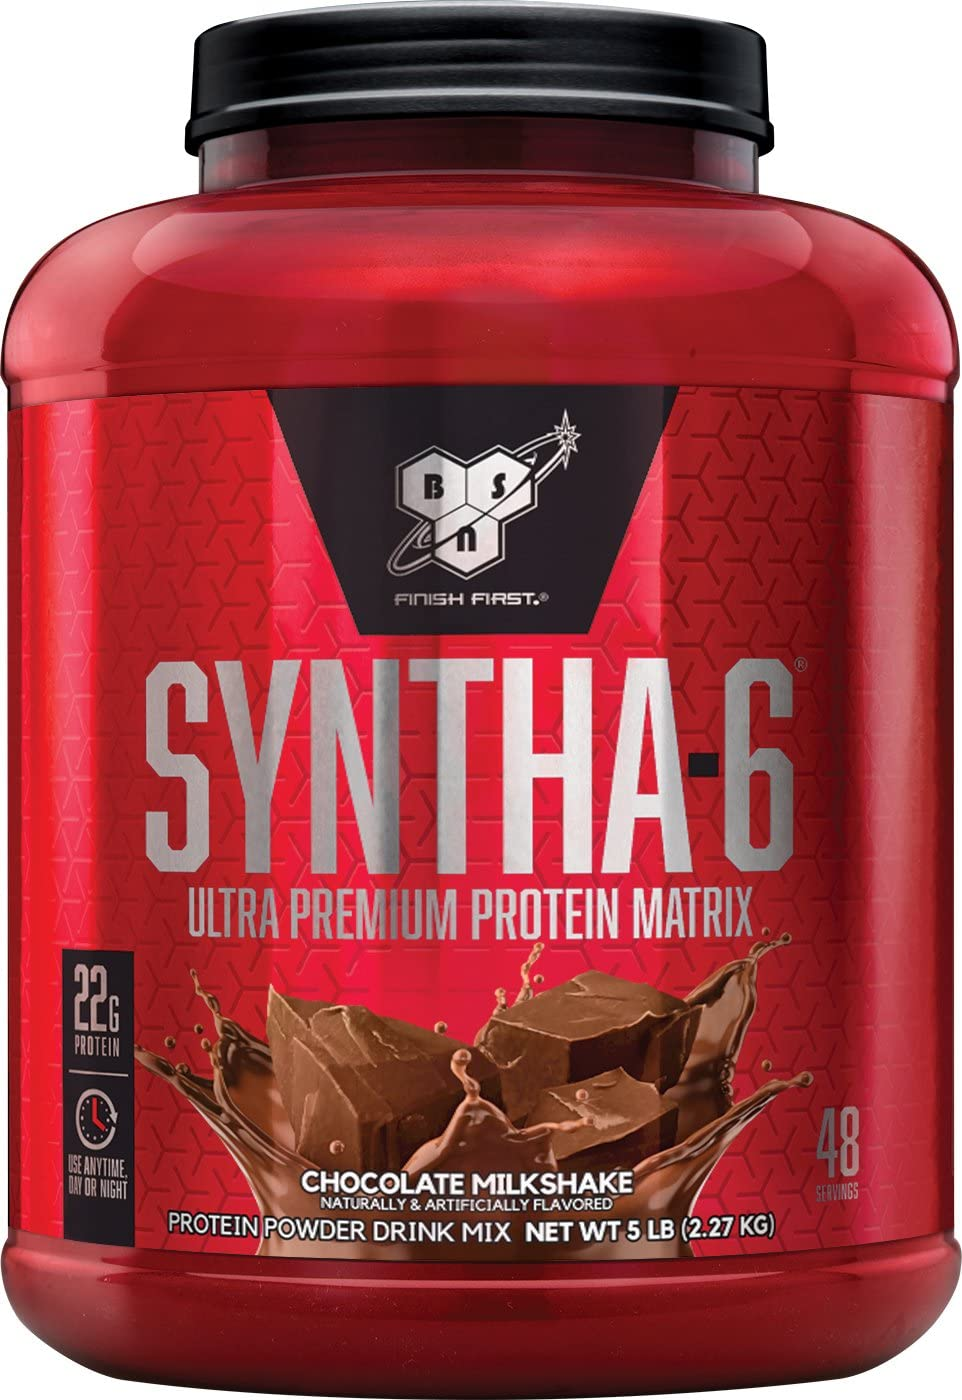 BSN SYNTHA-6 Whey Protein Powder, Micellar Casein, Milk Protein Isolate, Chocolate Milkshake, 48 Servings Packaging May Vary